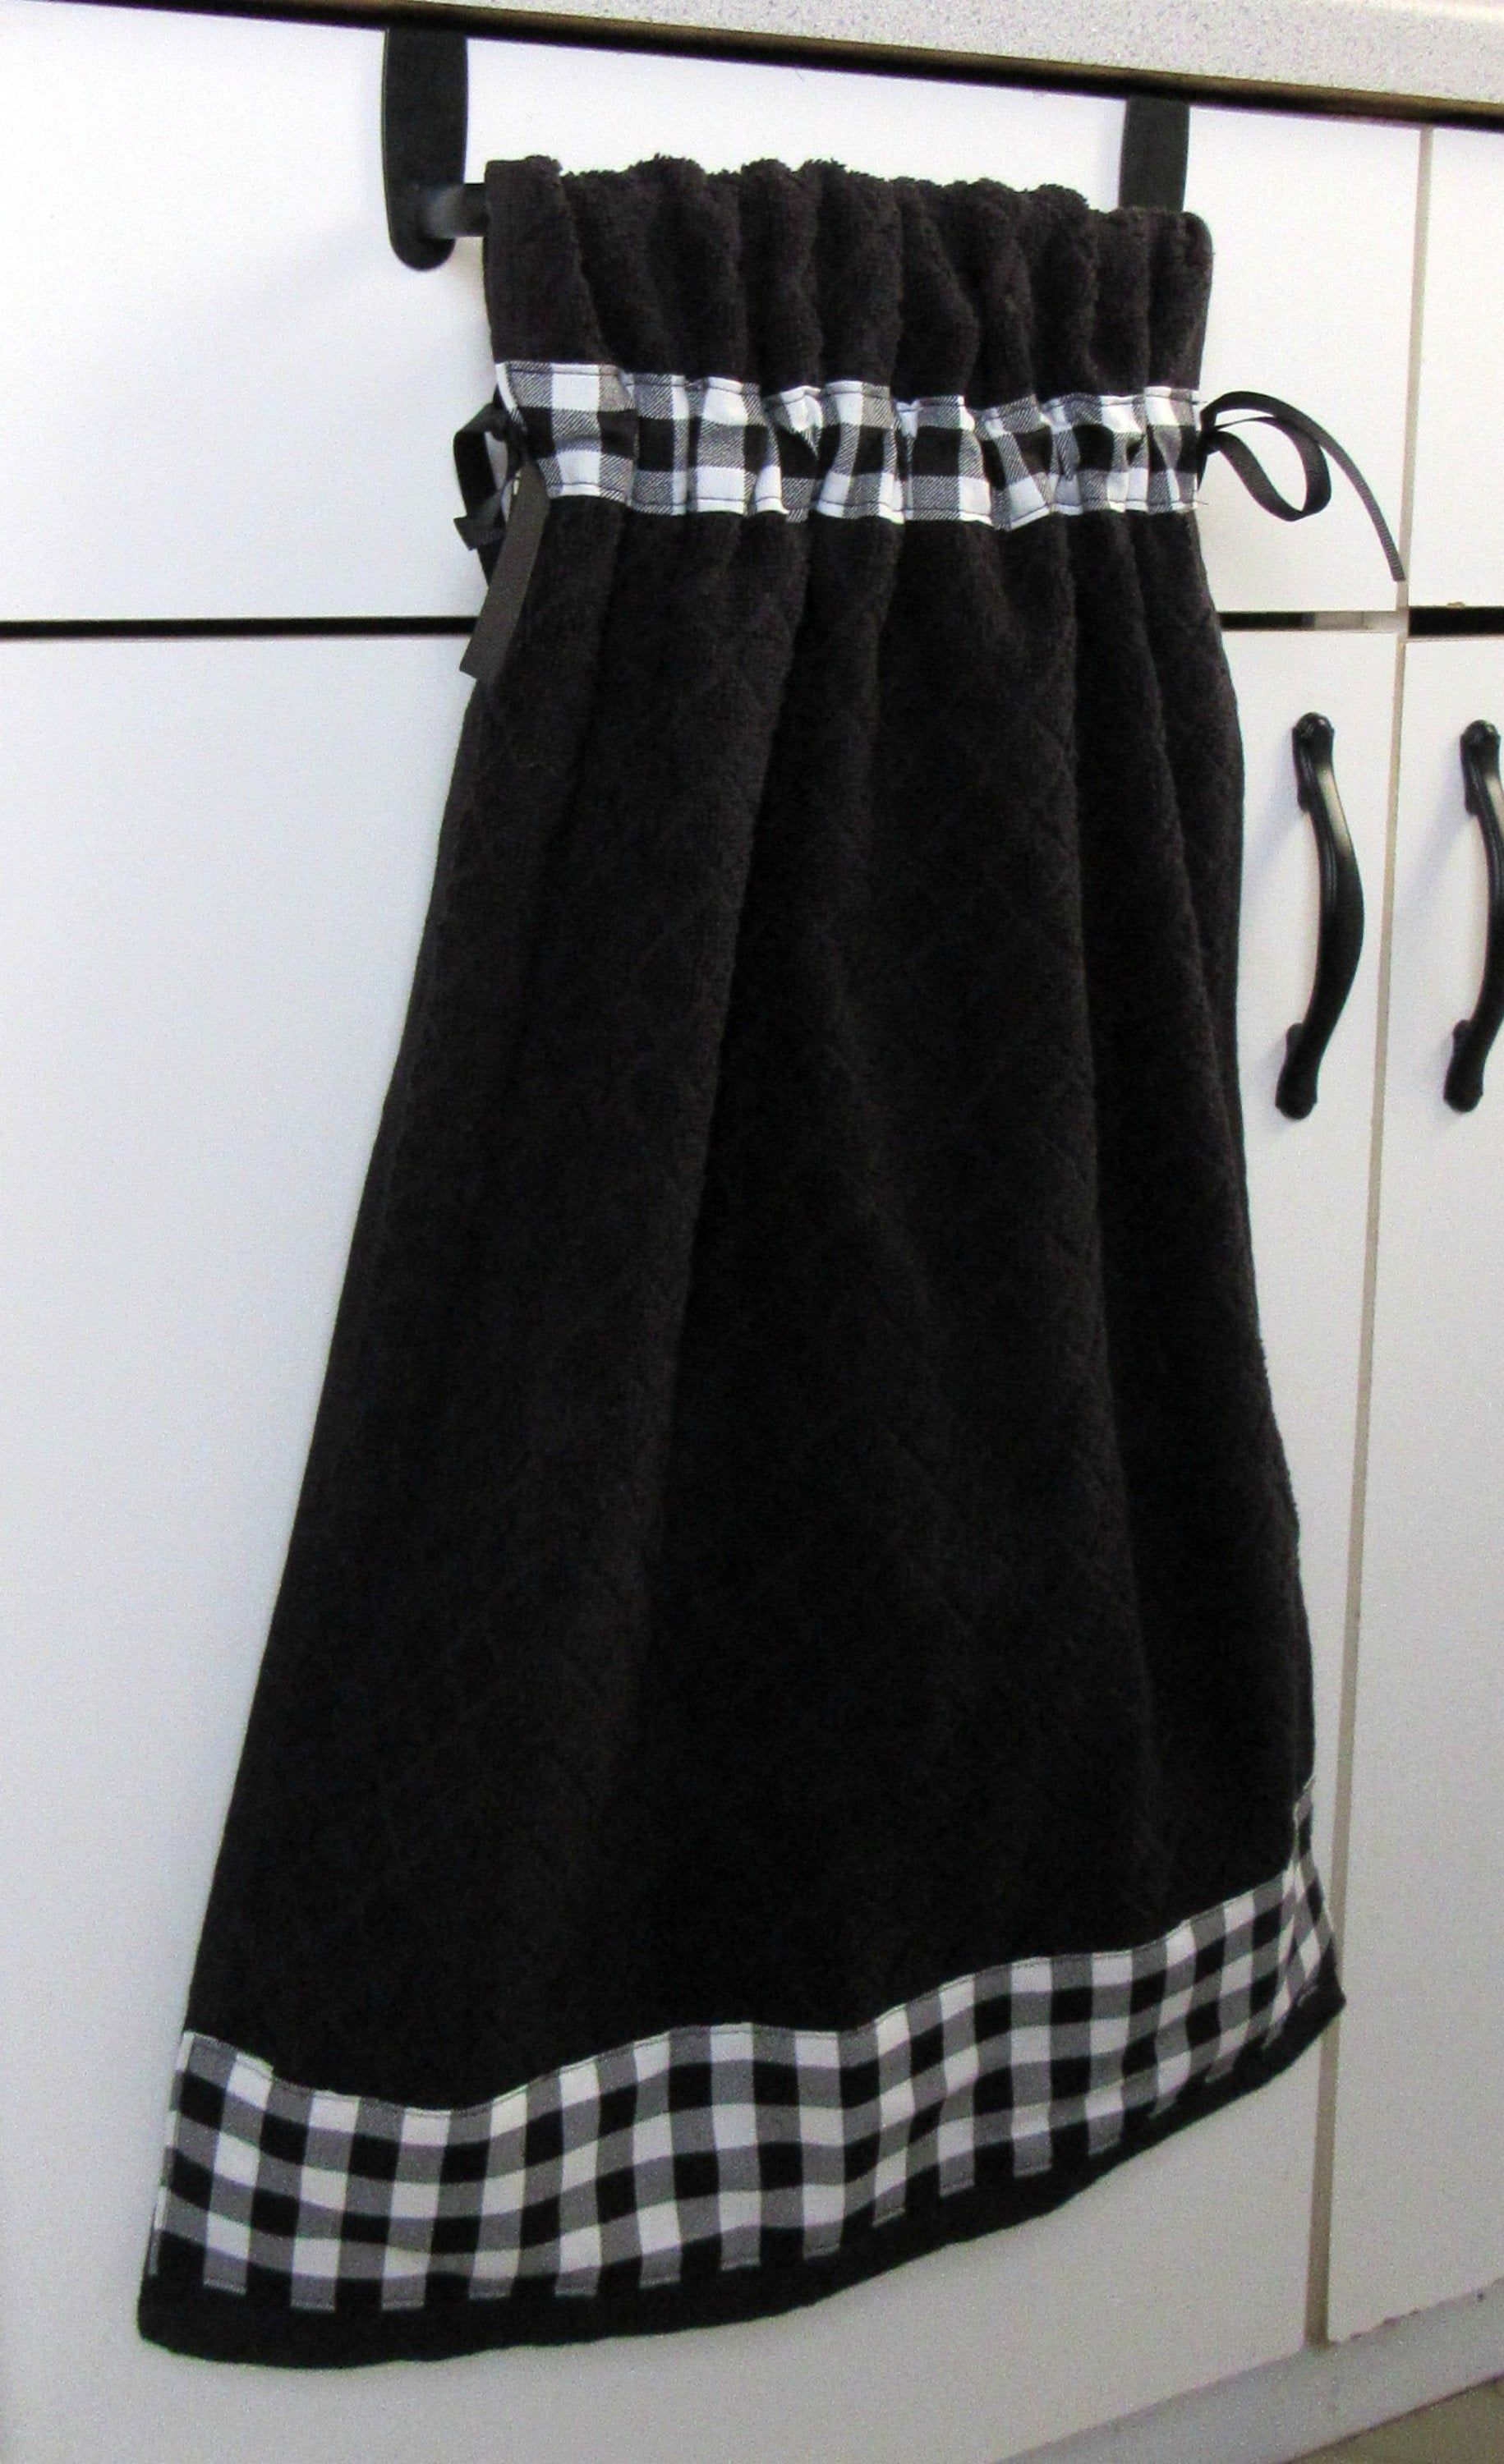 Tie Top Towels Black Cotton Kitchen Towel Accented With Buffalo